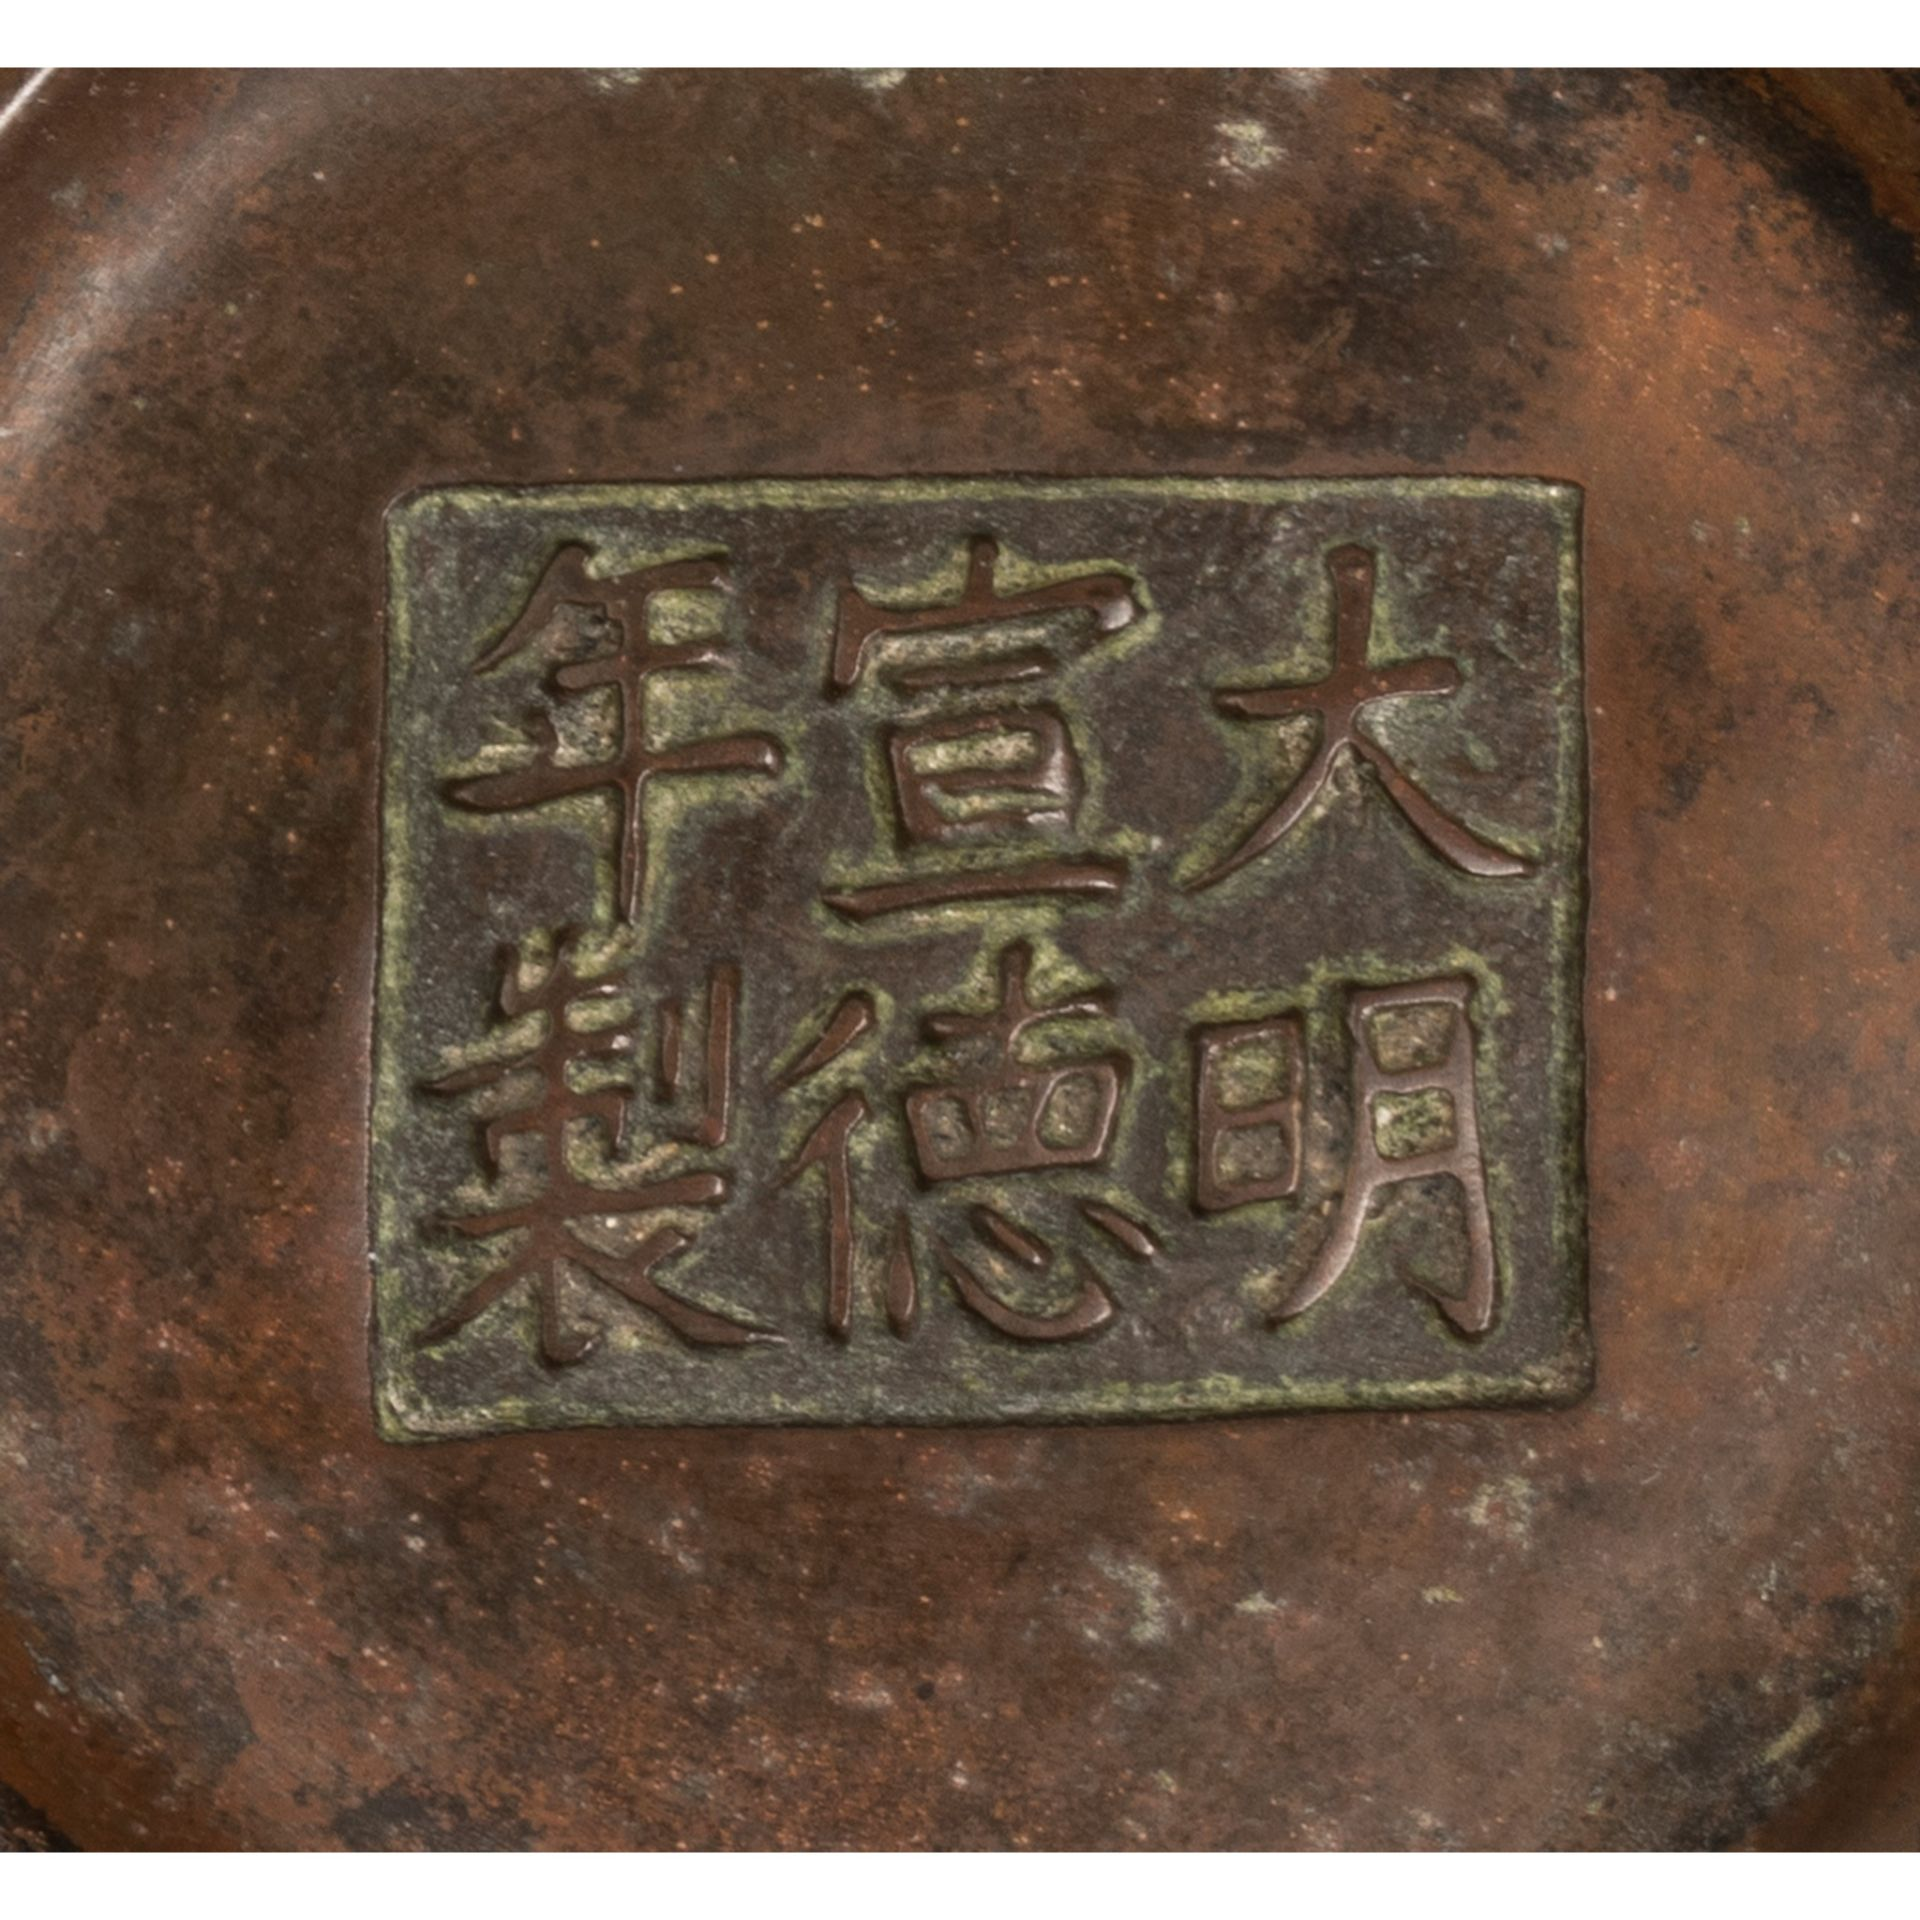 BRONZE CENSER WITH WOODEN COVER XUANDE MARK - Image 2 of 2